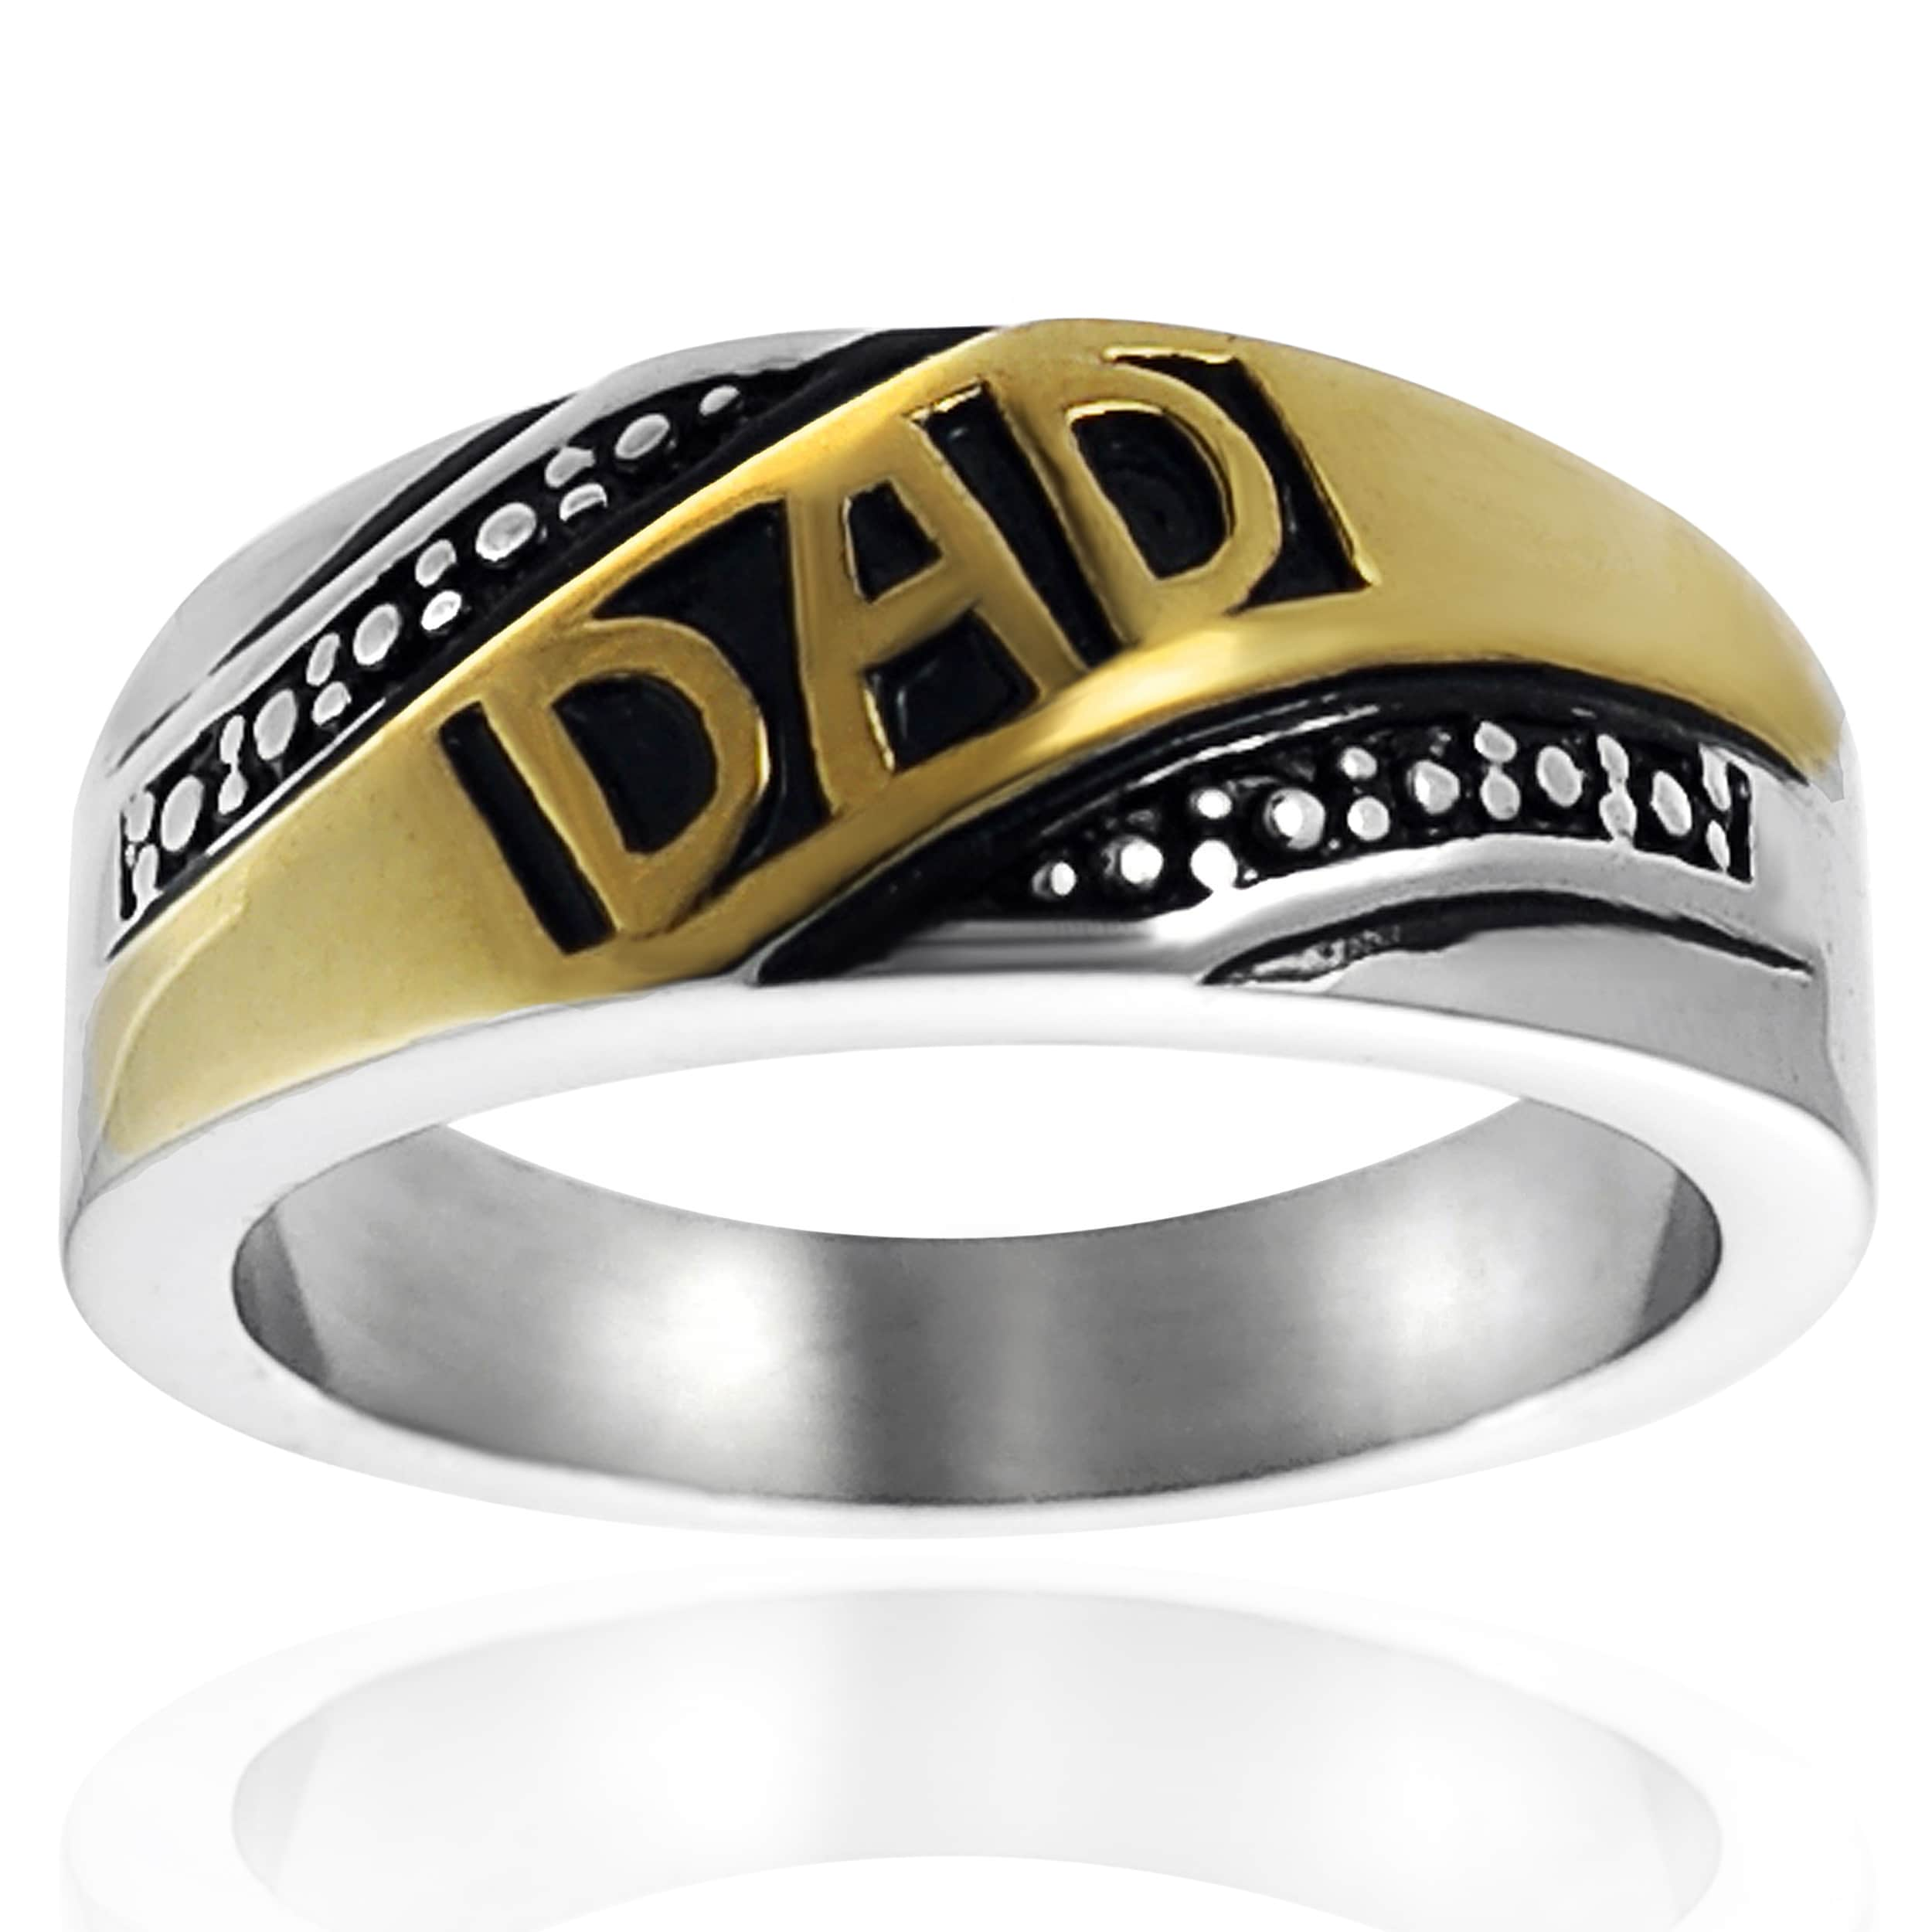 Vance Co. Men's Goldtone Stainless Steel Dad Ring